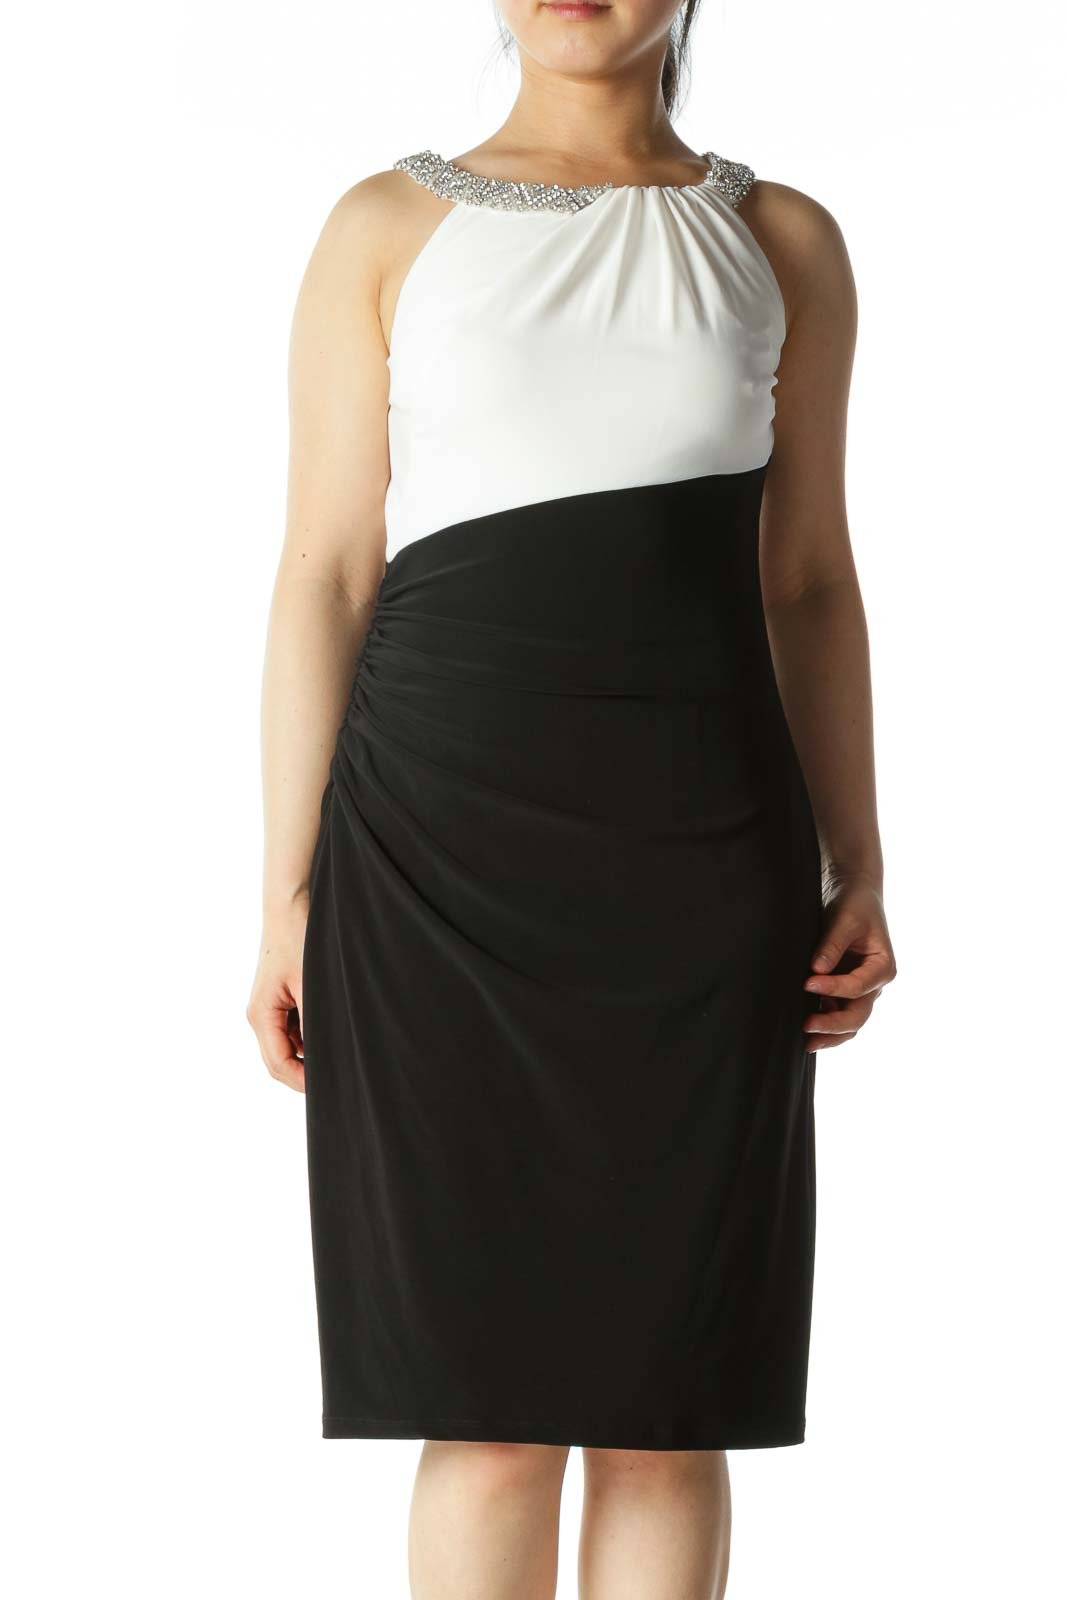 Black and White Cocktail Dress With Bejeweled Straps